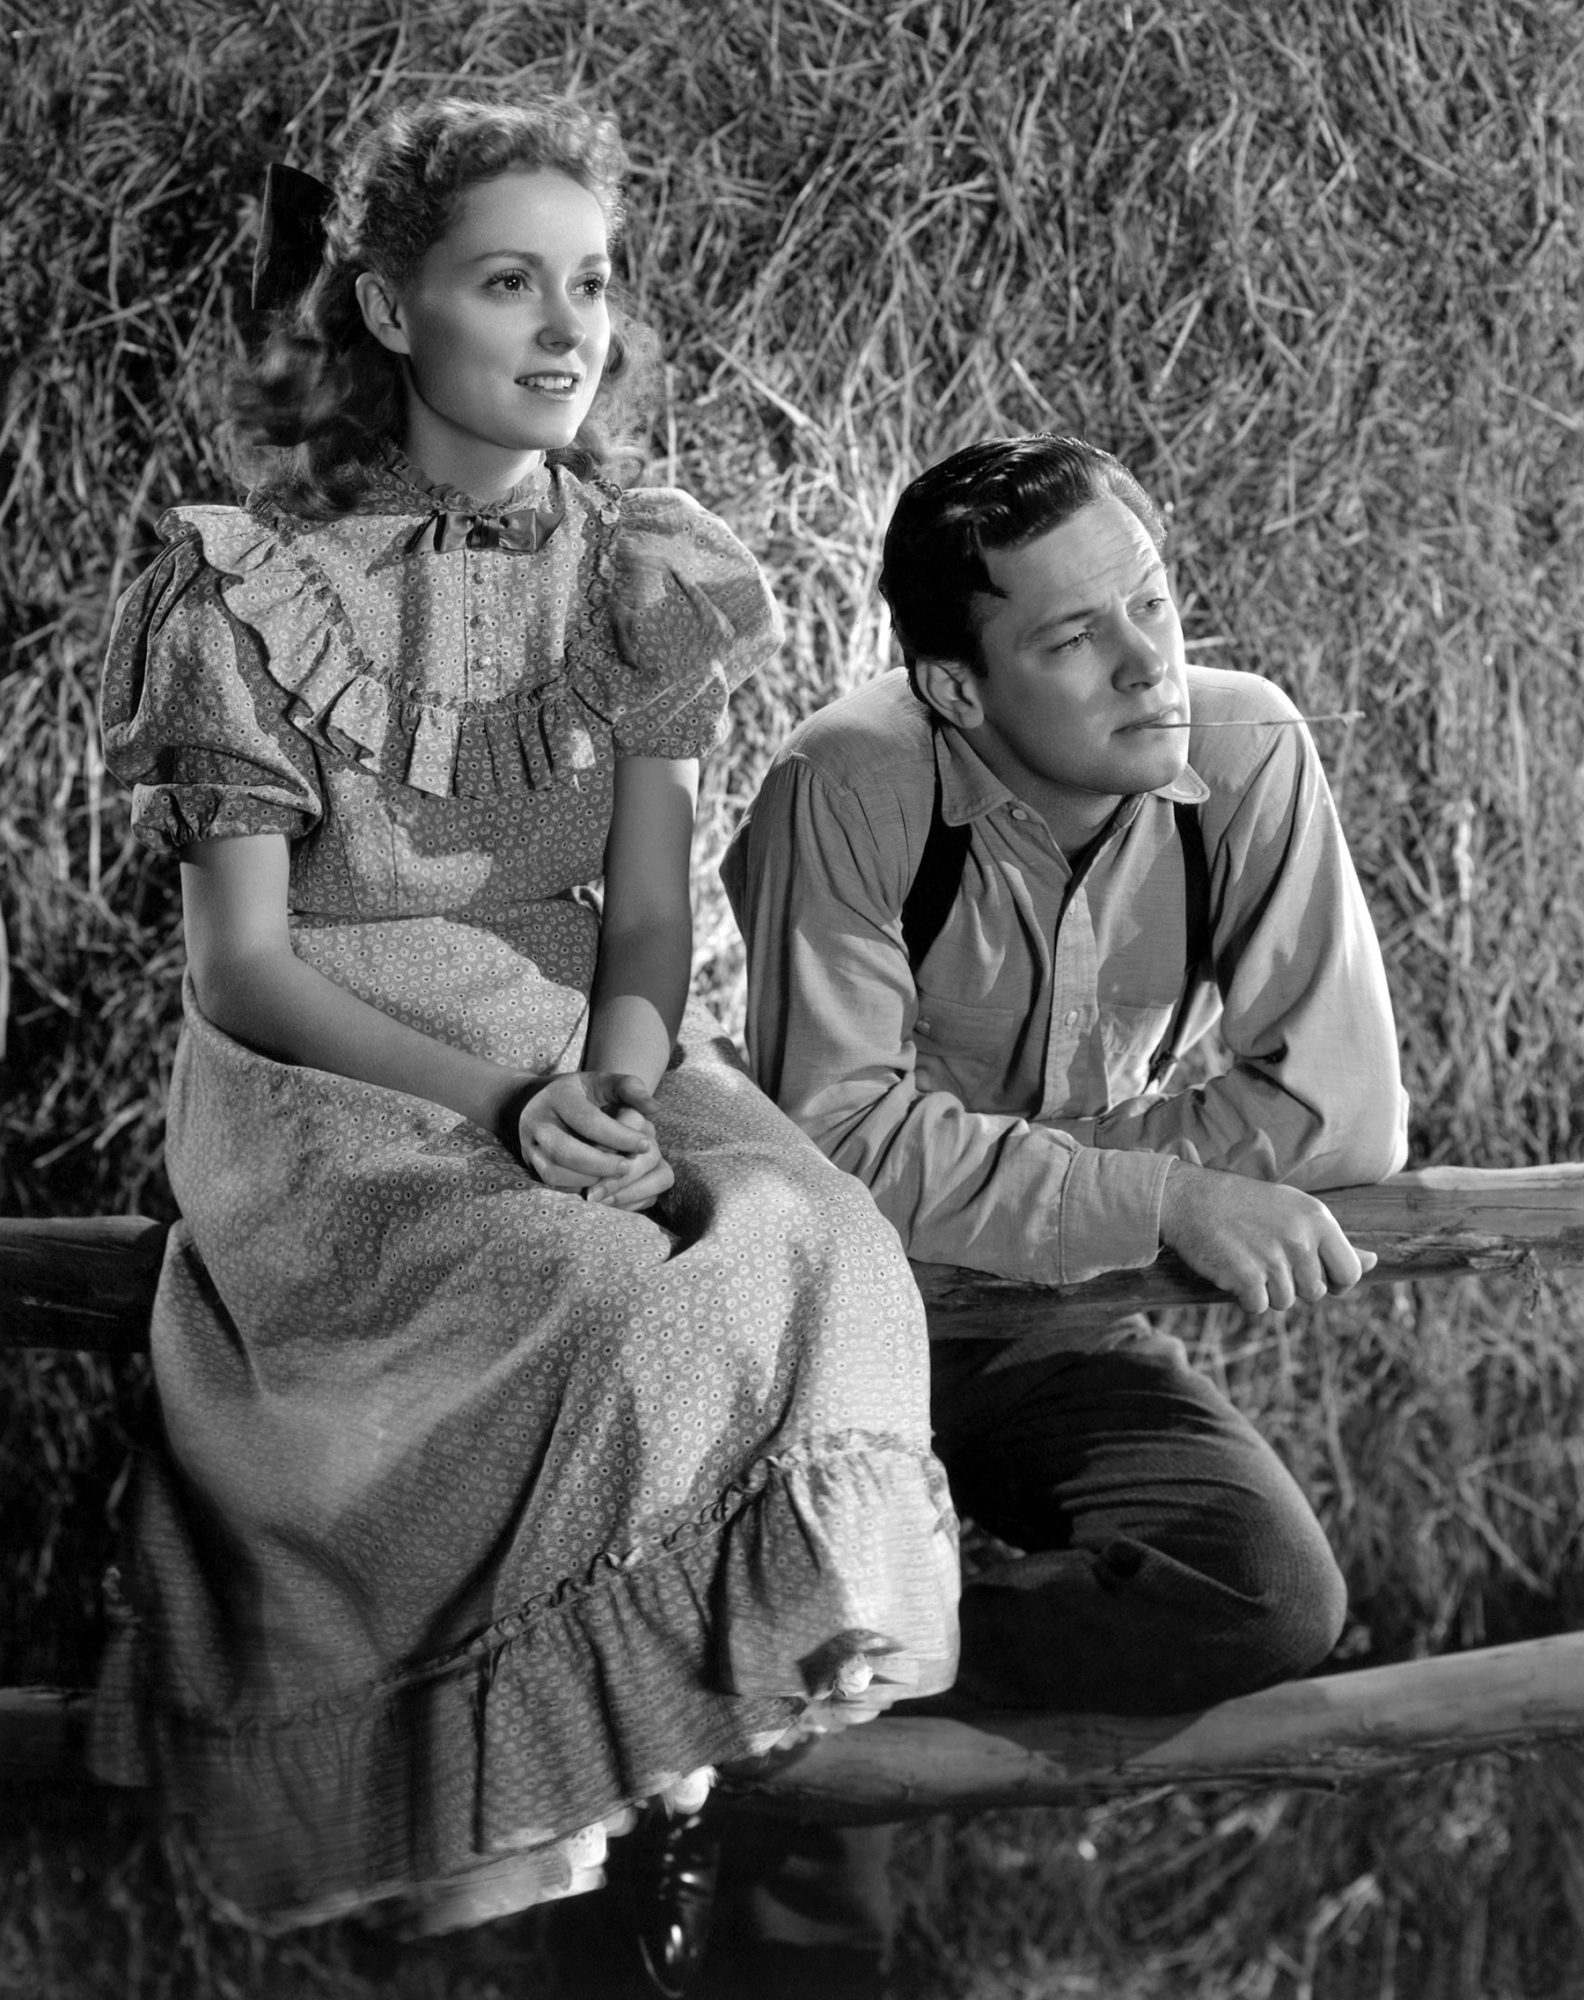 OUR TOWN, from left: Martha Scott, William Holden, 1940